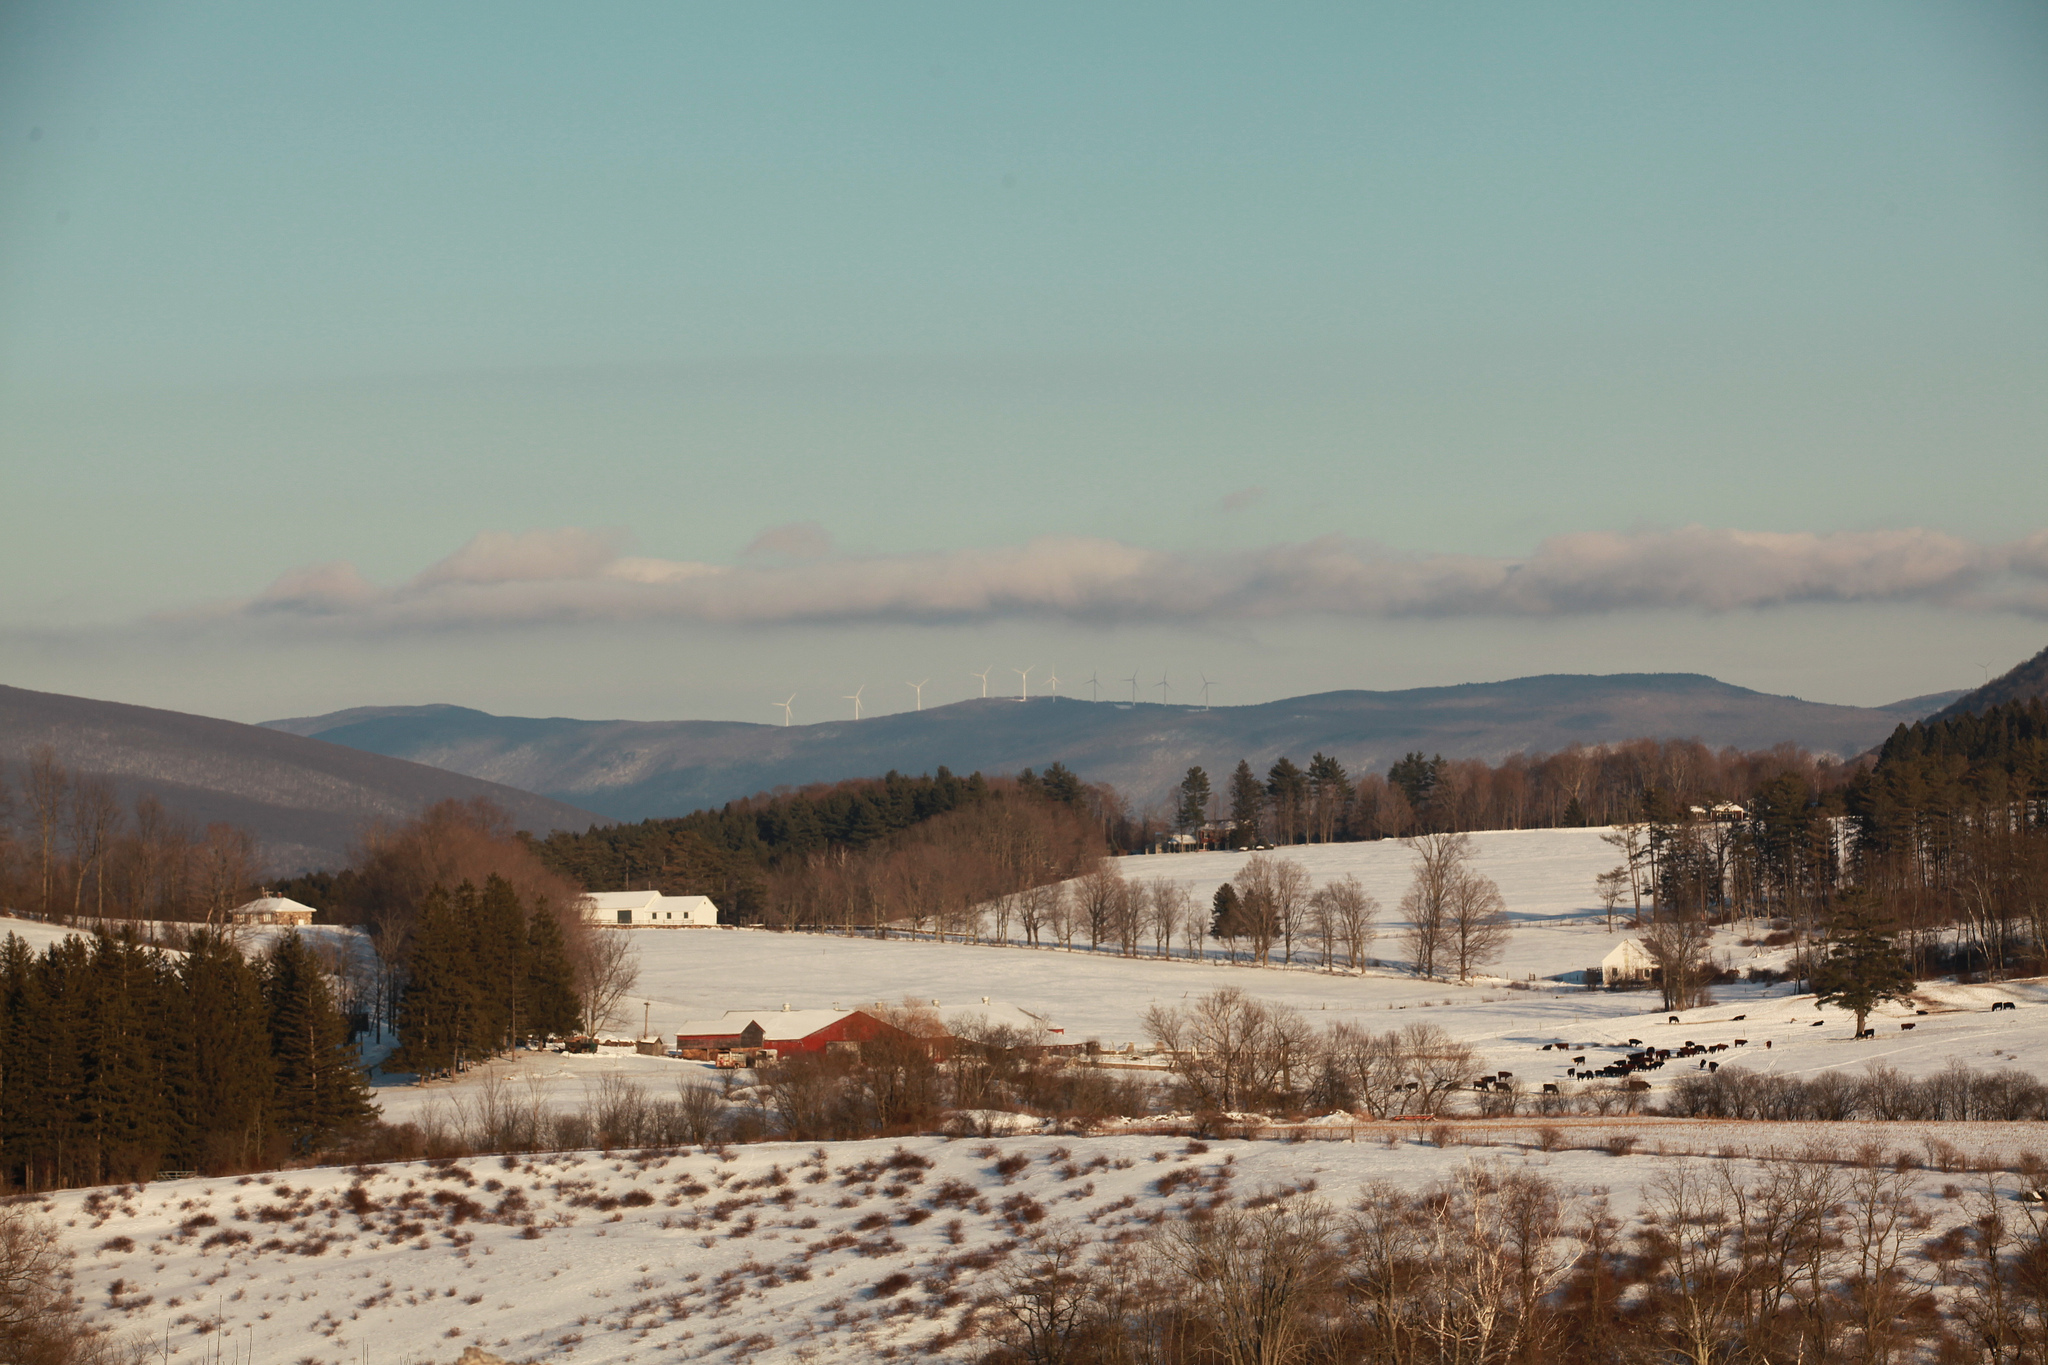 Berkshires scenery